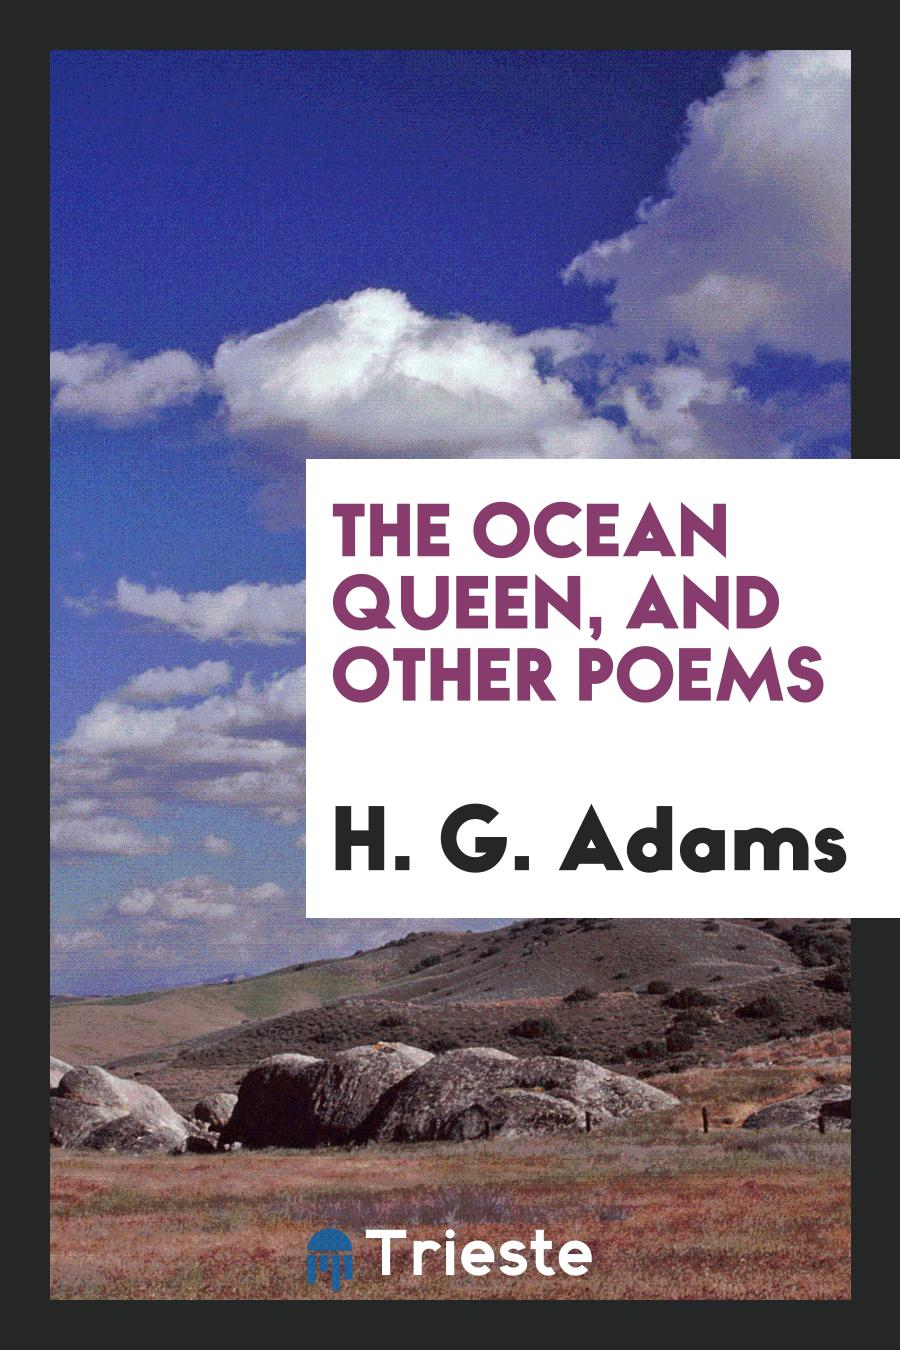 The ocean queen, and other poems